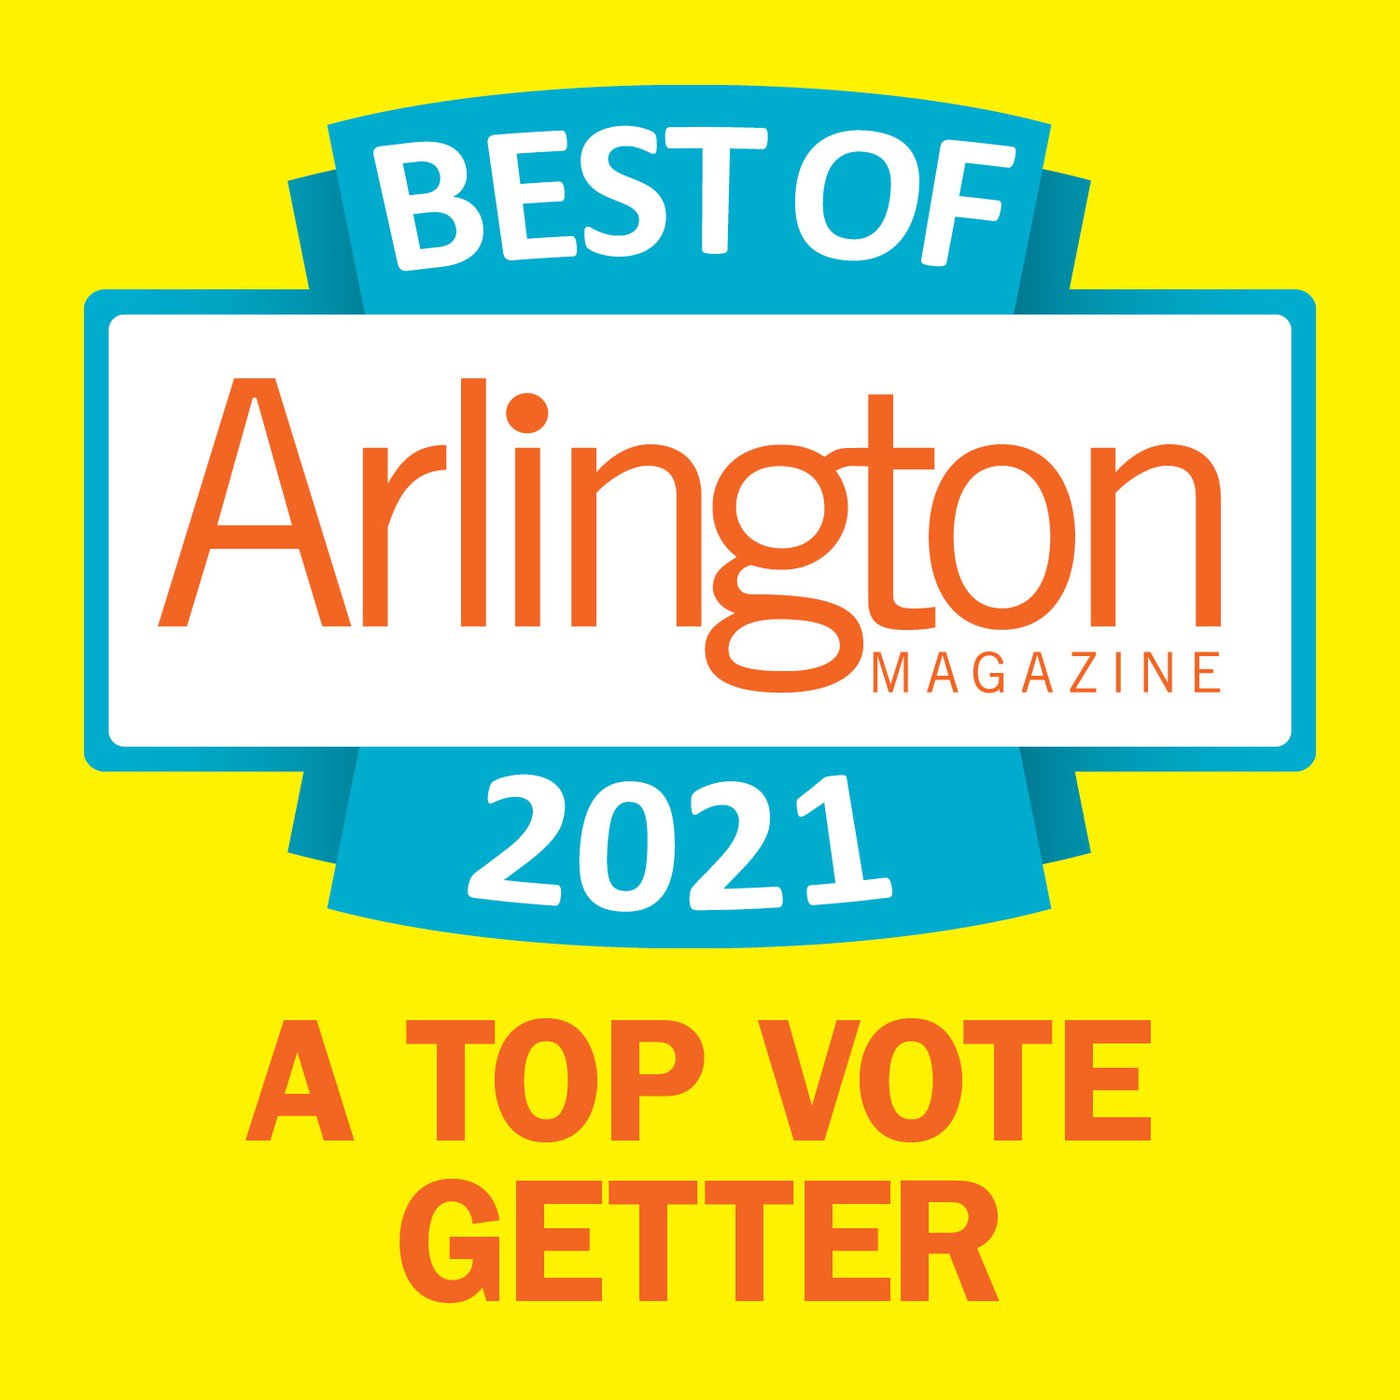 Mount Olivet Preschool Best of Arlington Magazine 2021 Top Vote Getter